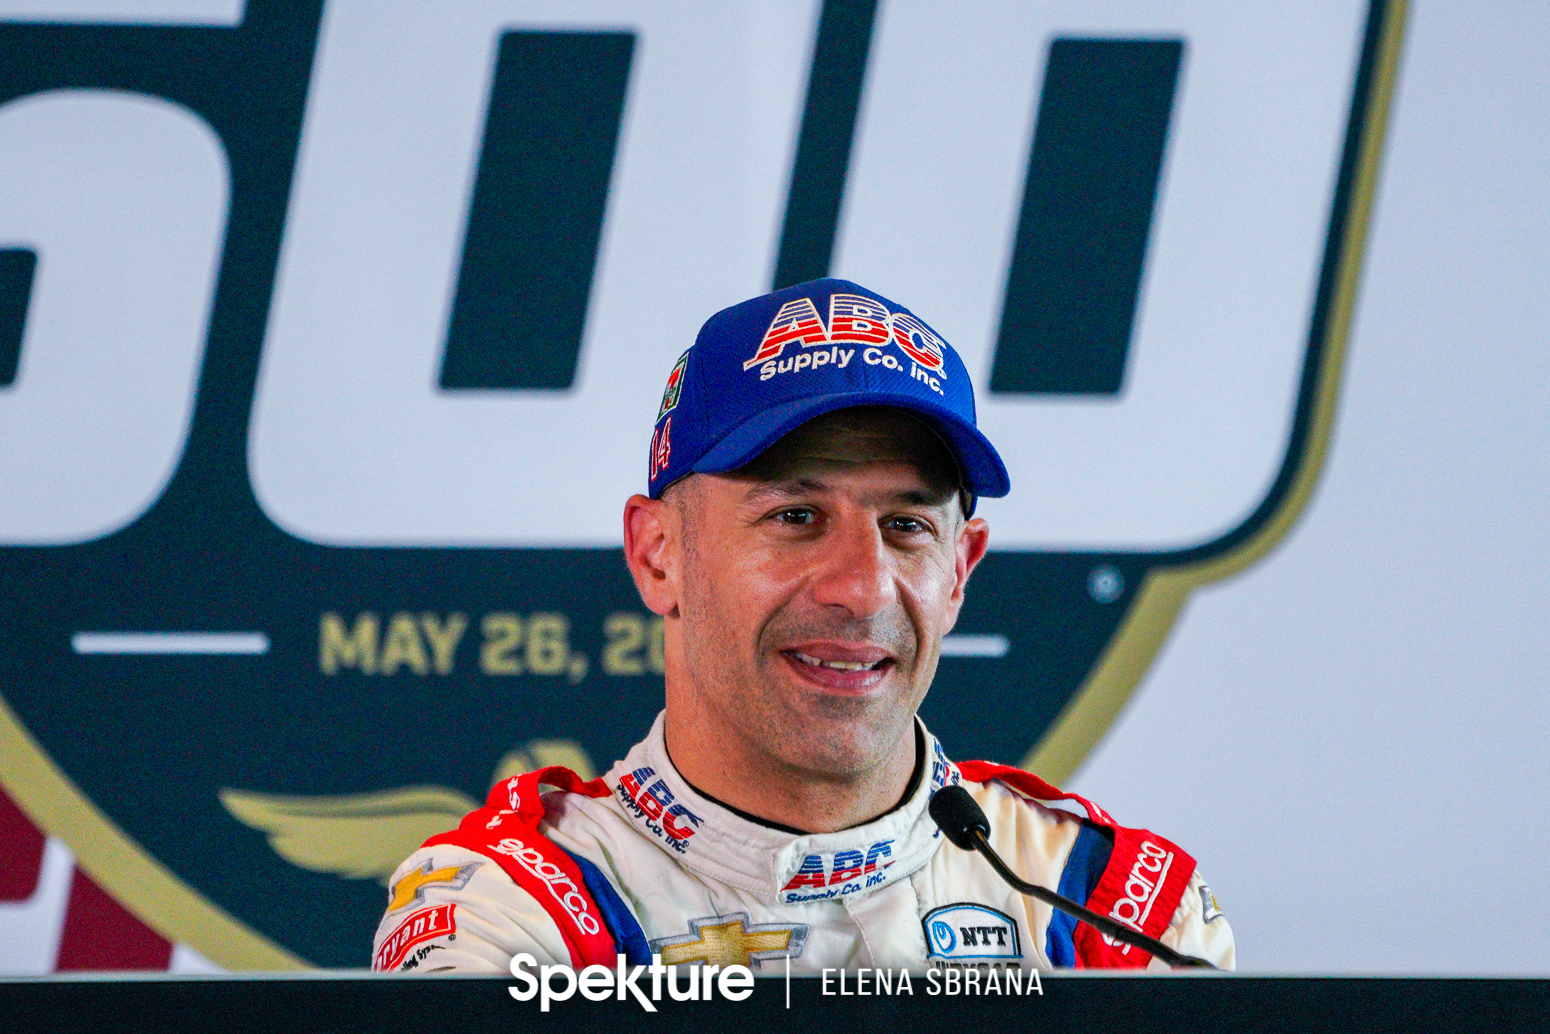 Earchphoto Sports - Tony Kanaan during the press conference on Carb Day